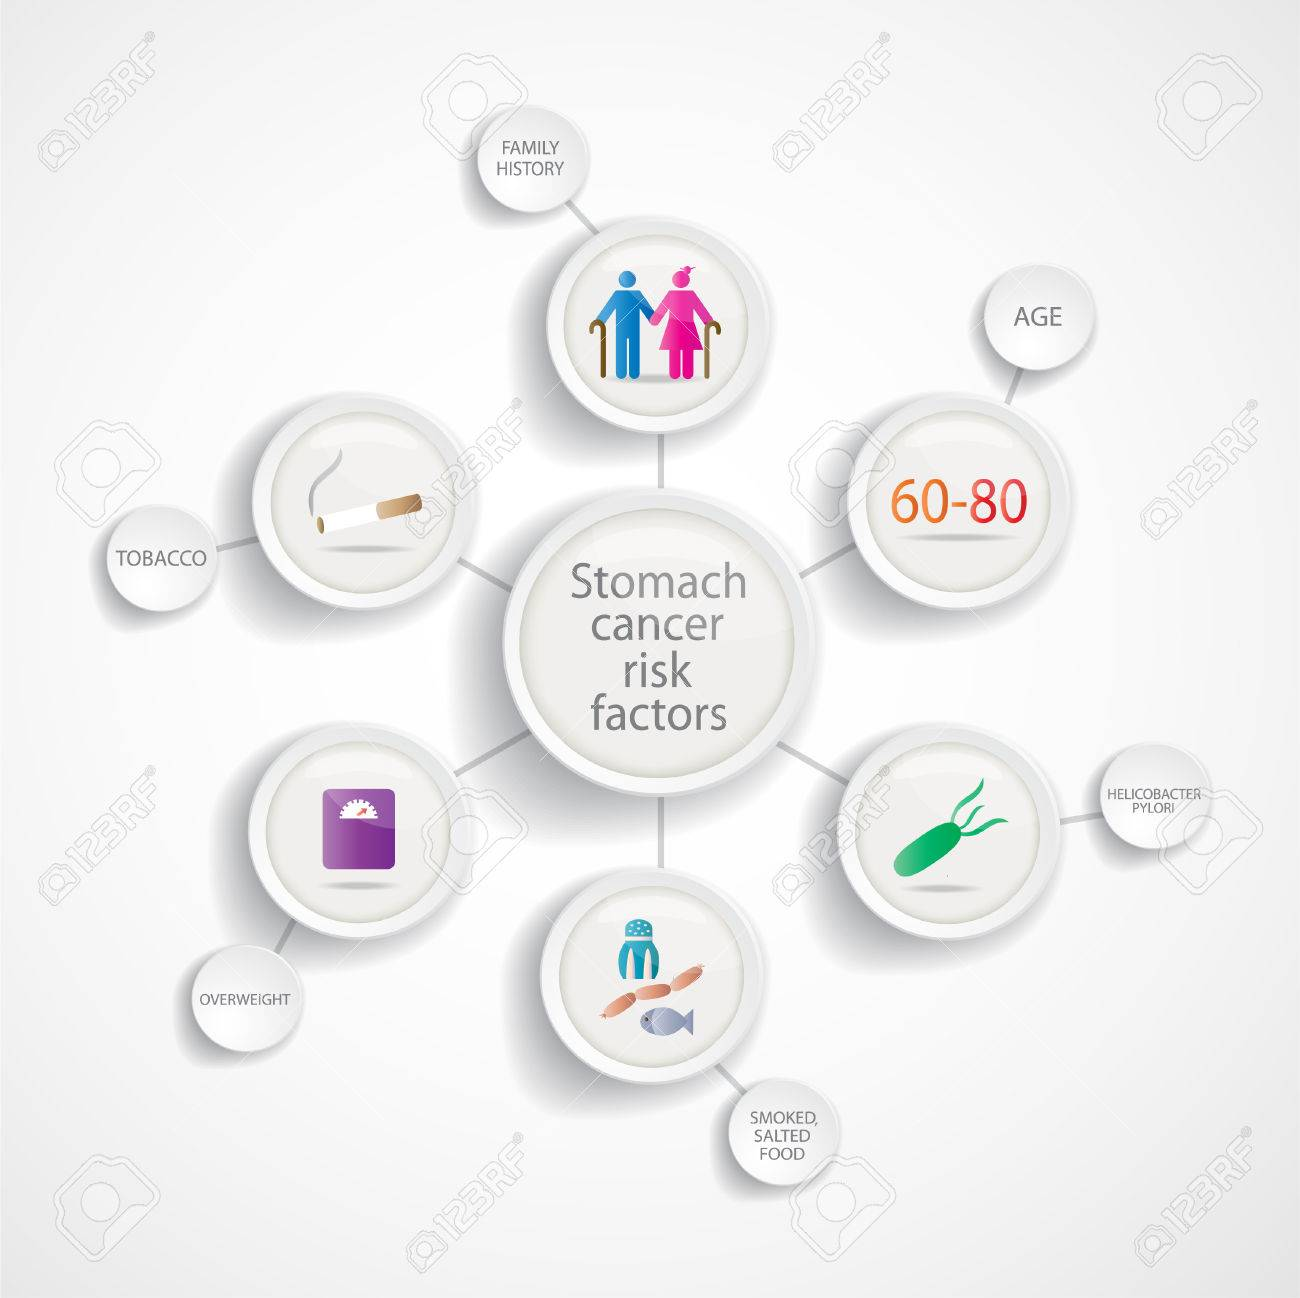 [The prevalence of Helicobacter pylori infection in gastric cancer and gastric stump cancer].